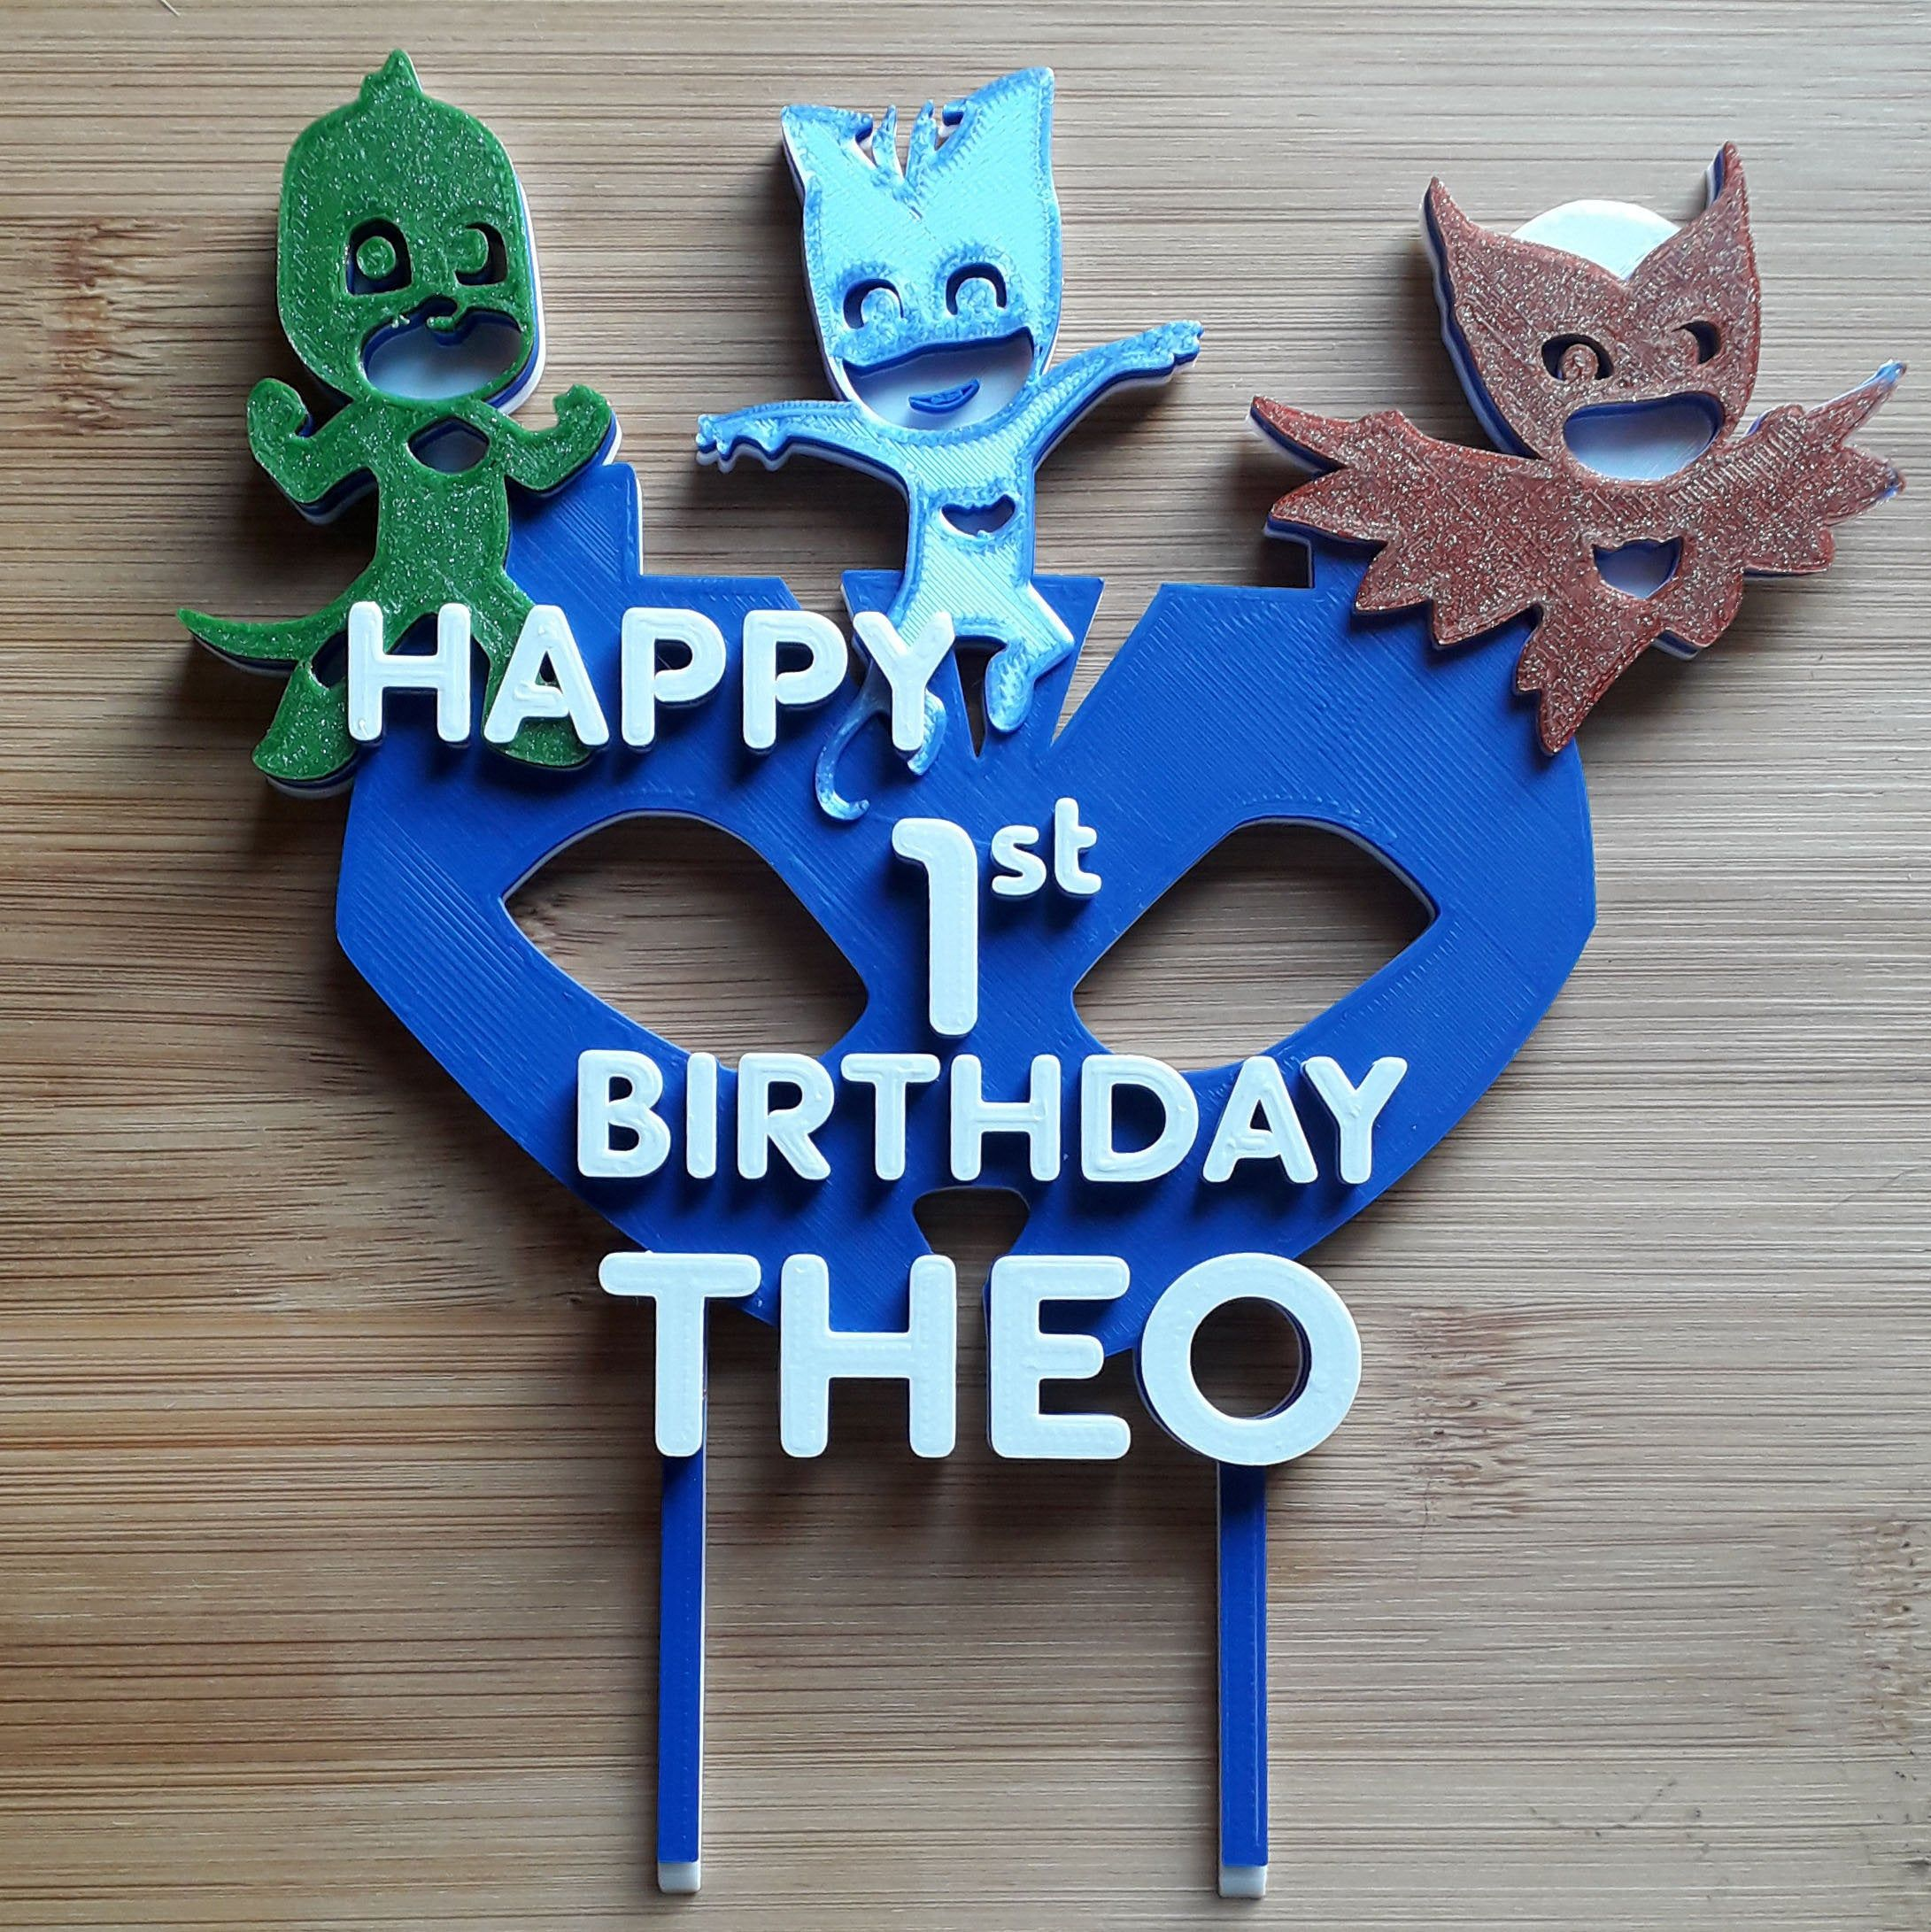 pj mask birthday cake toppers